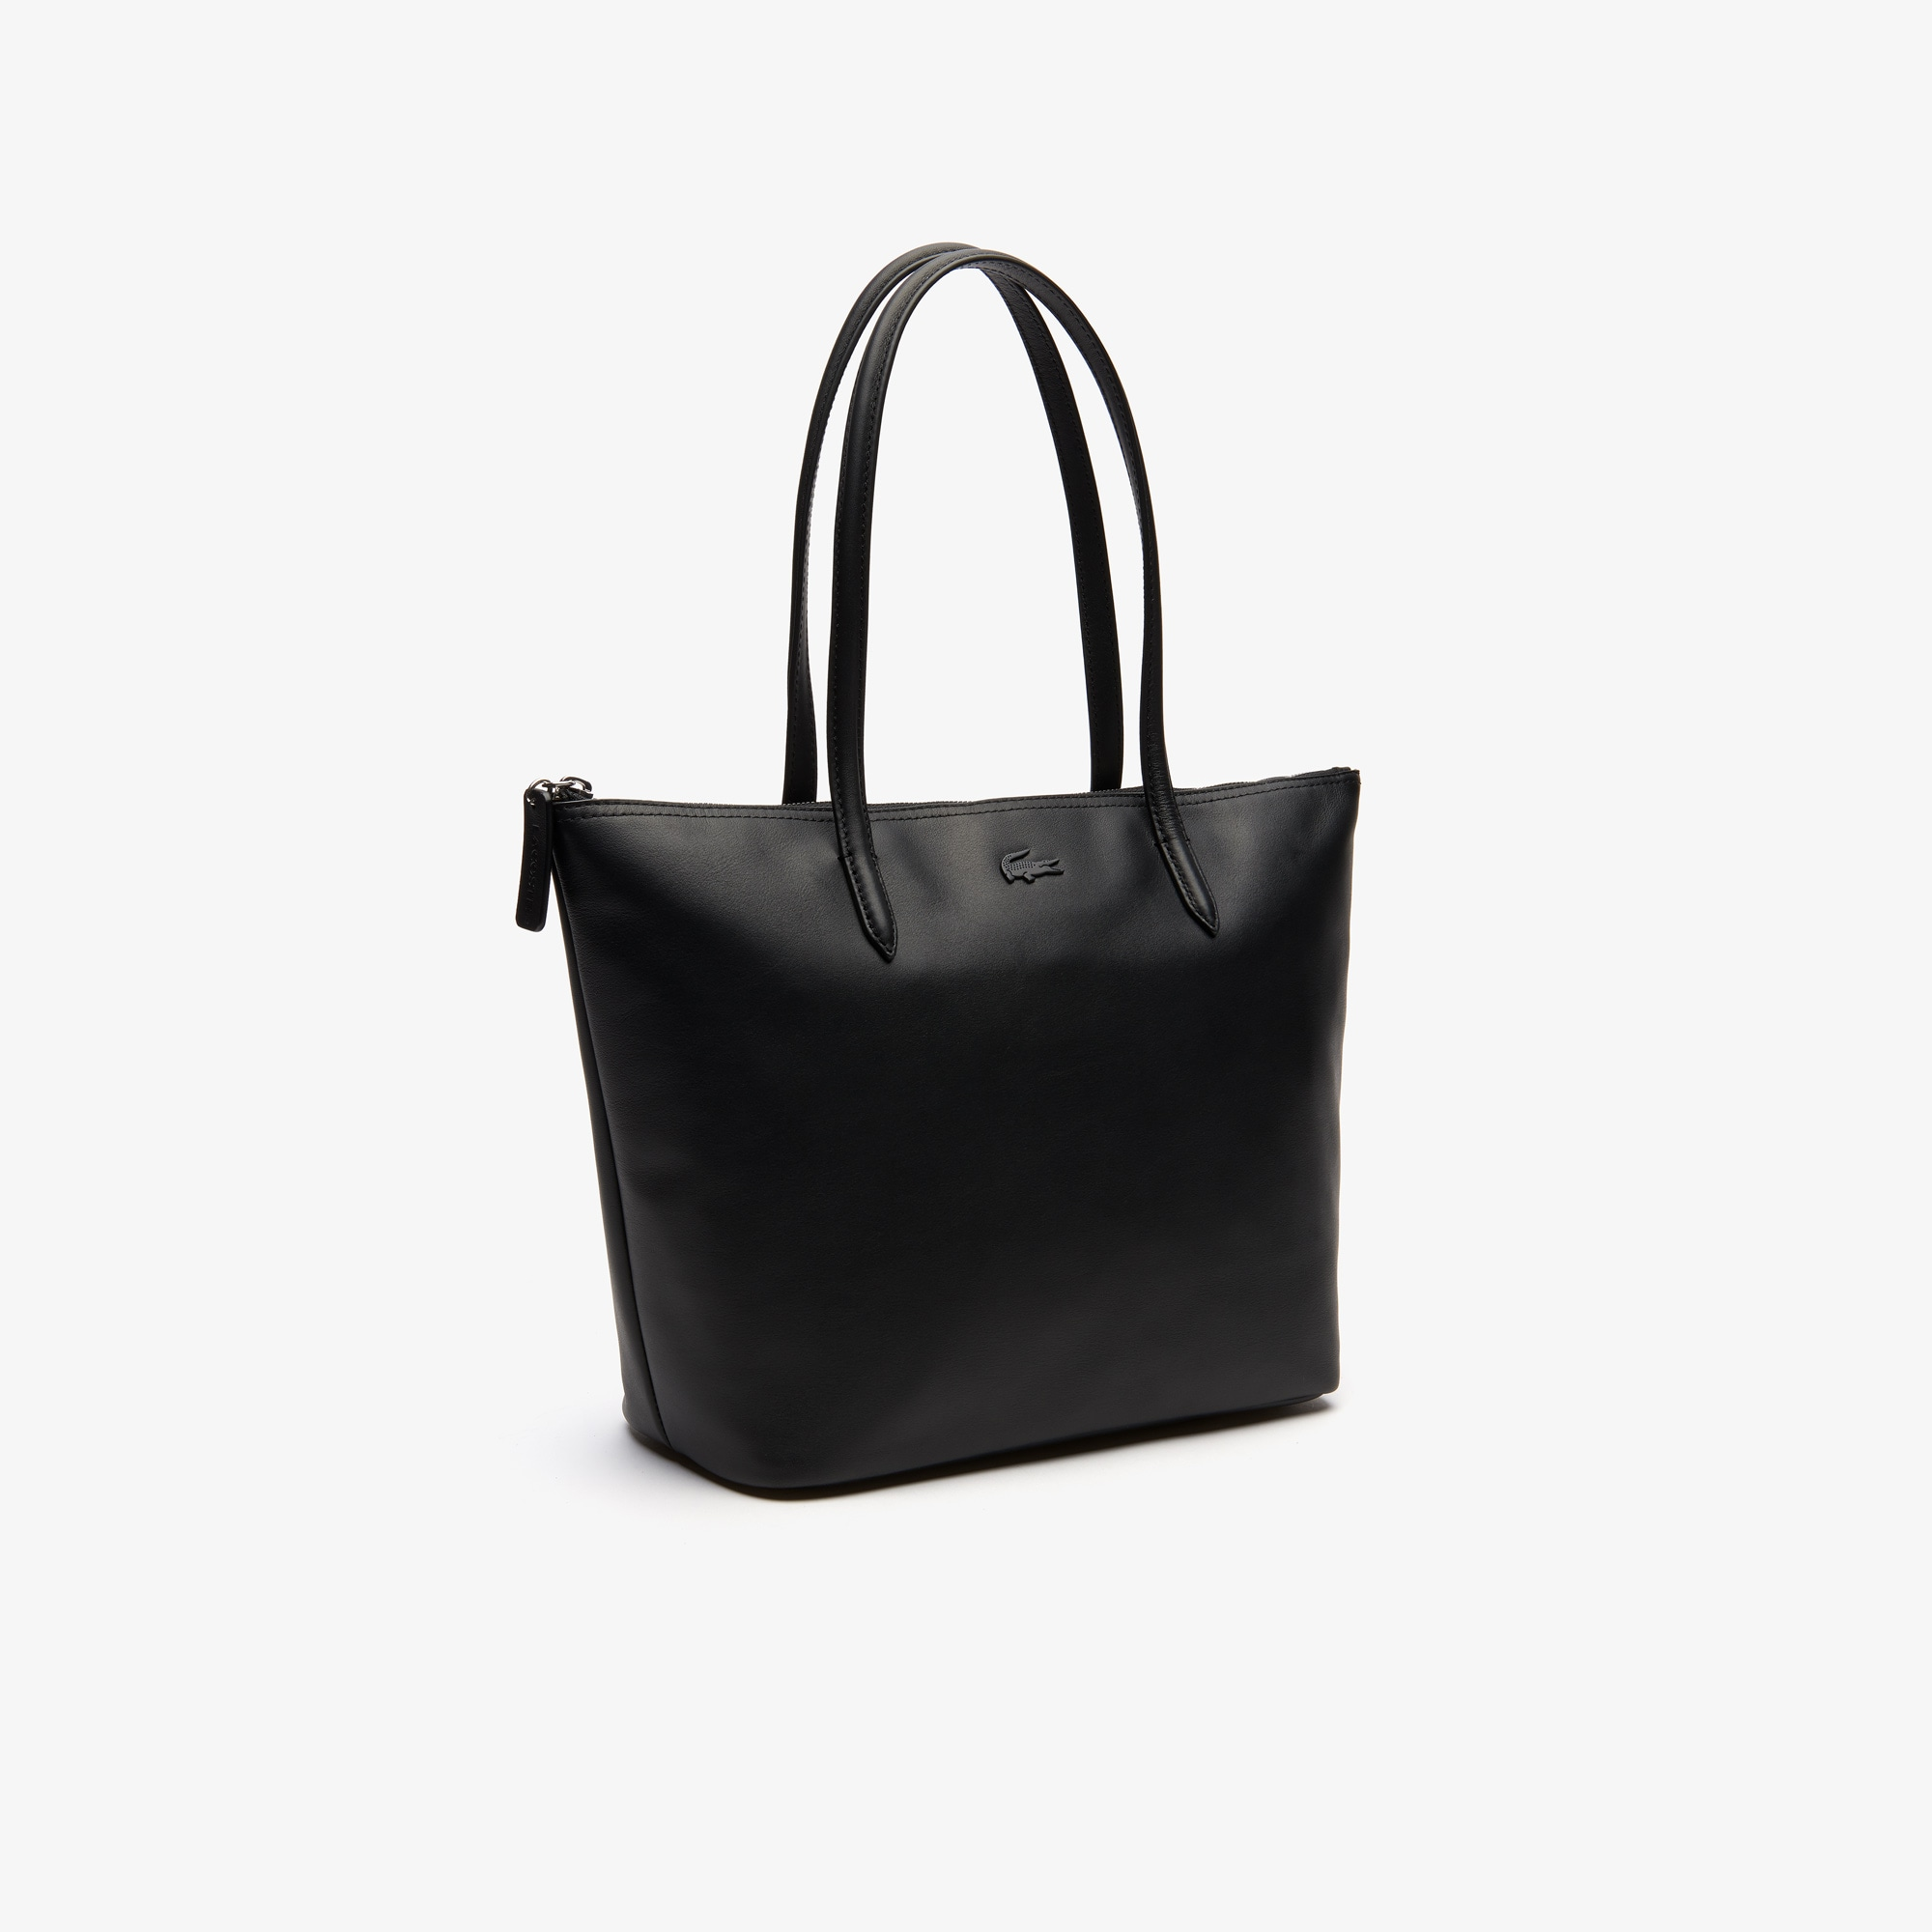 a2c059d3f8314 Women's L.12.12 Small Leather Tote Bag | LACOSTE